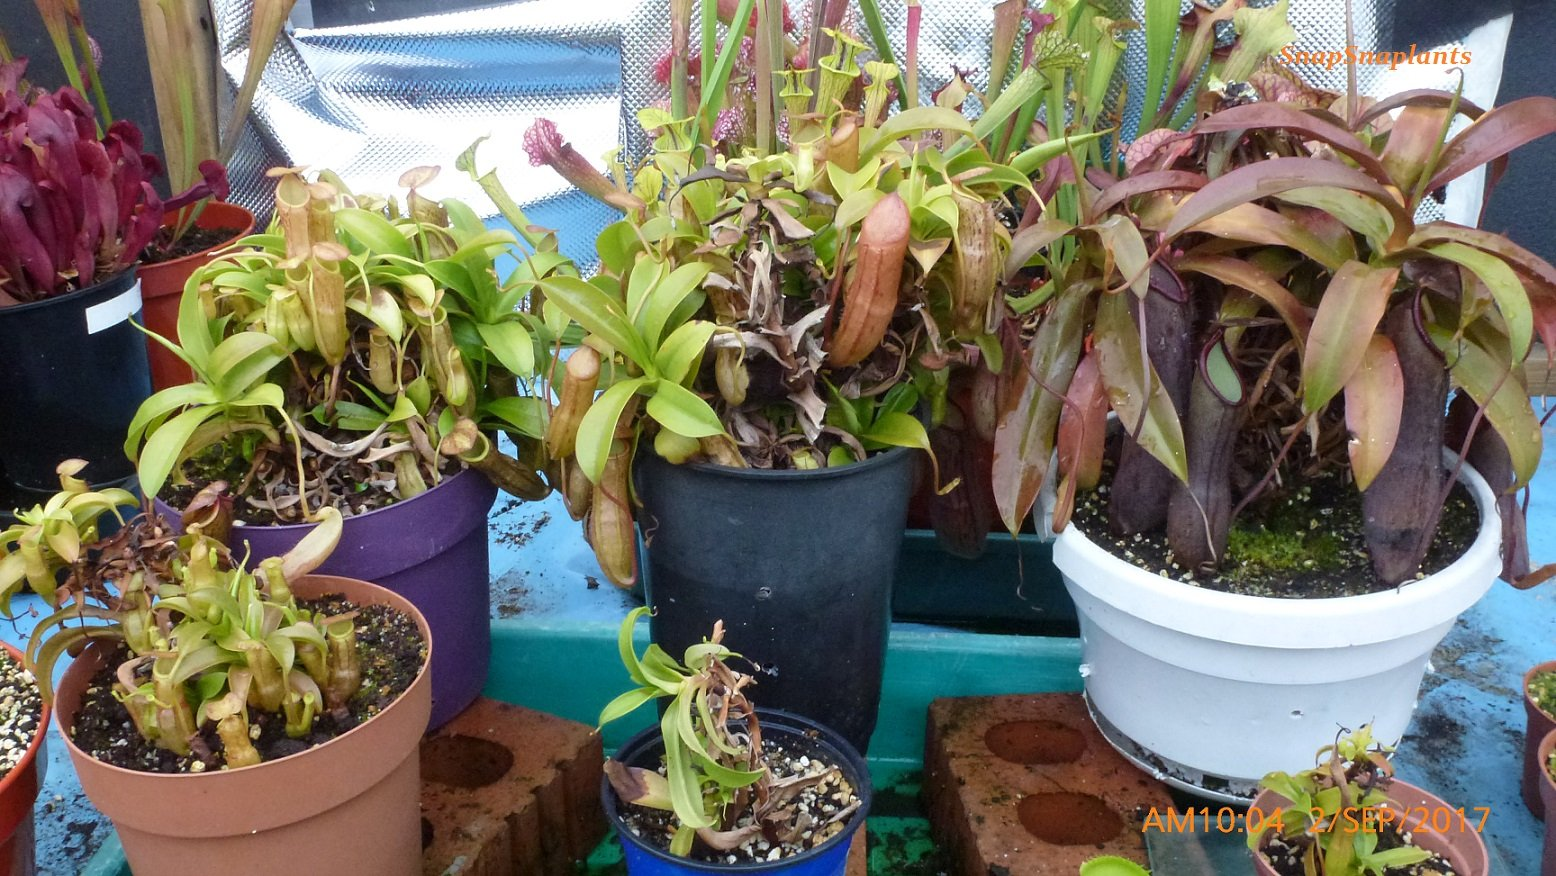 Some Nepenthes growing well   got some of shoots at the front doing well